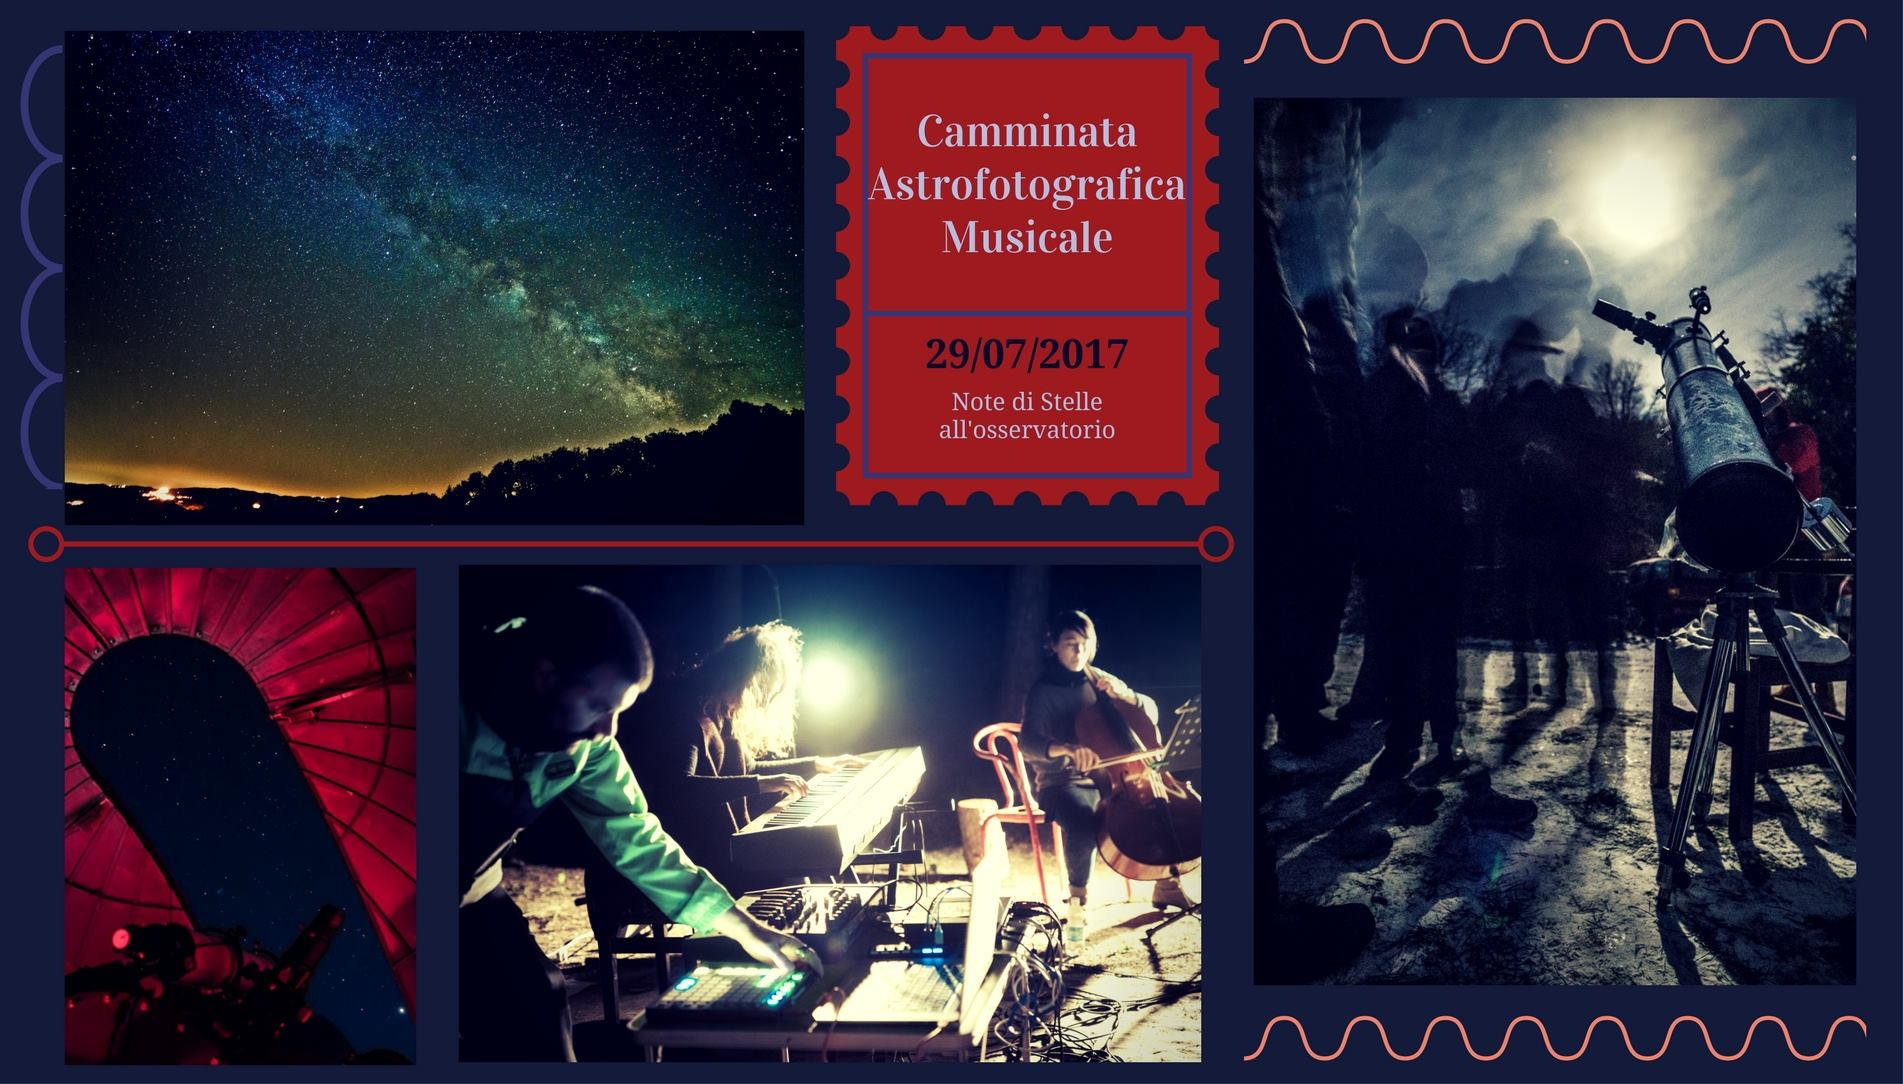 camminate astrofotografiche